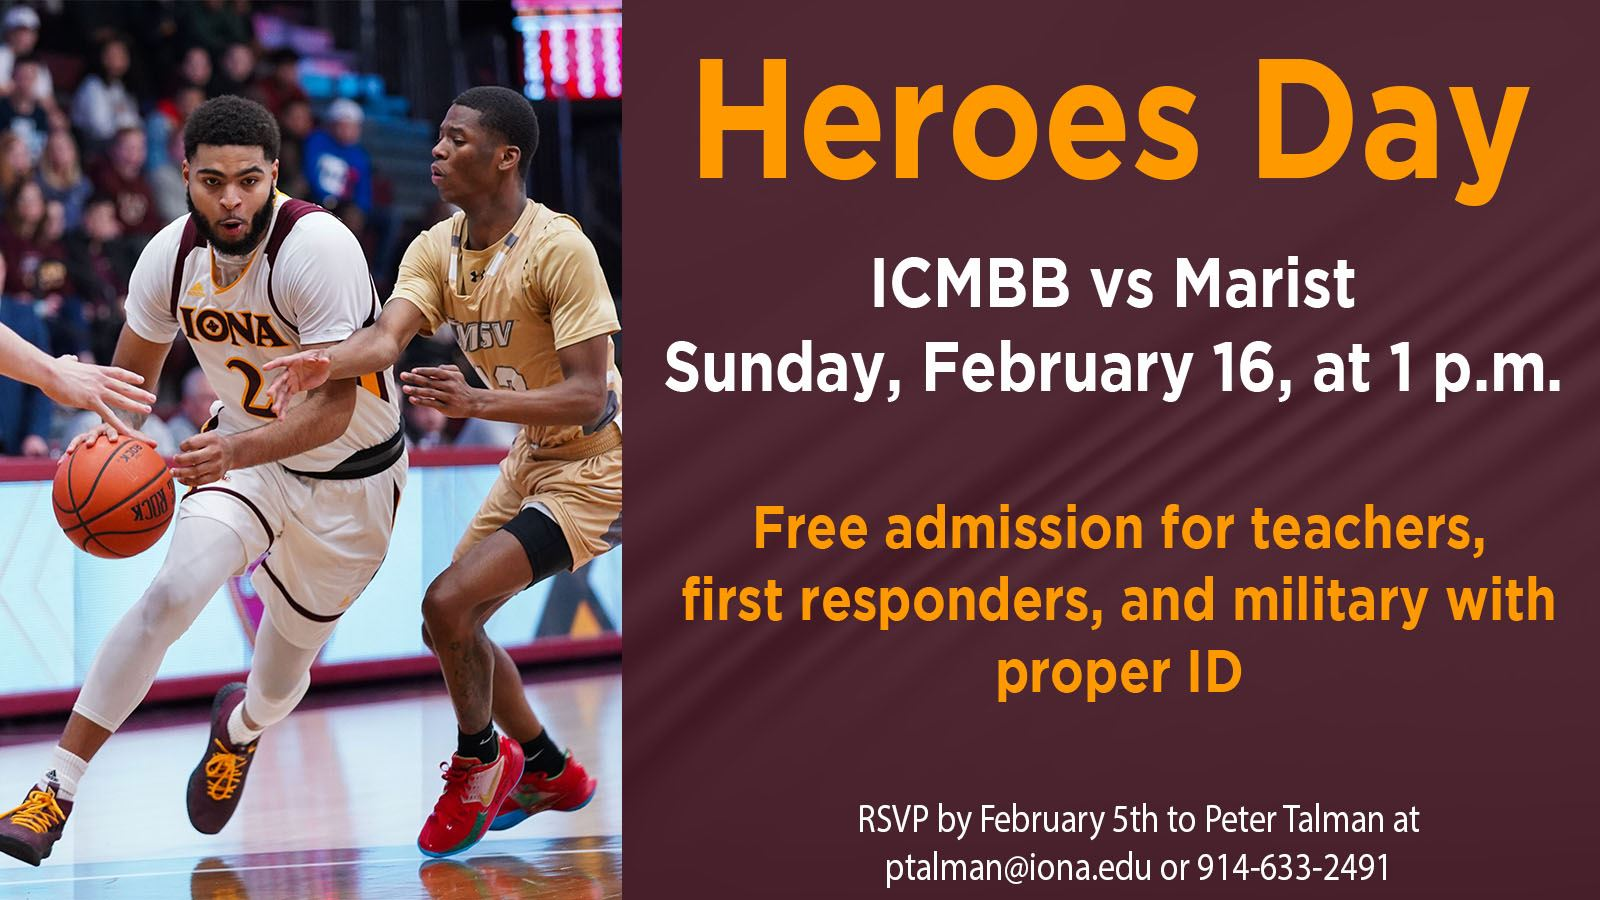 ICMBB Heroes Day Flyer